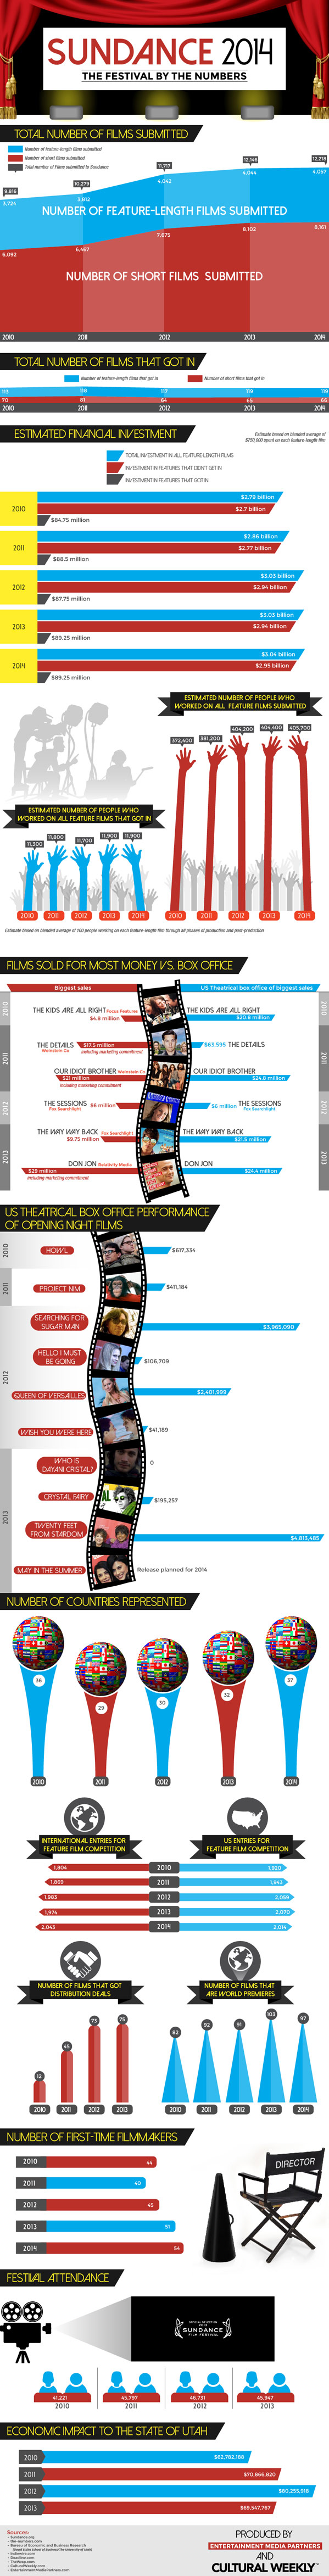 Sundance 2014 By the Numbers Infographic